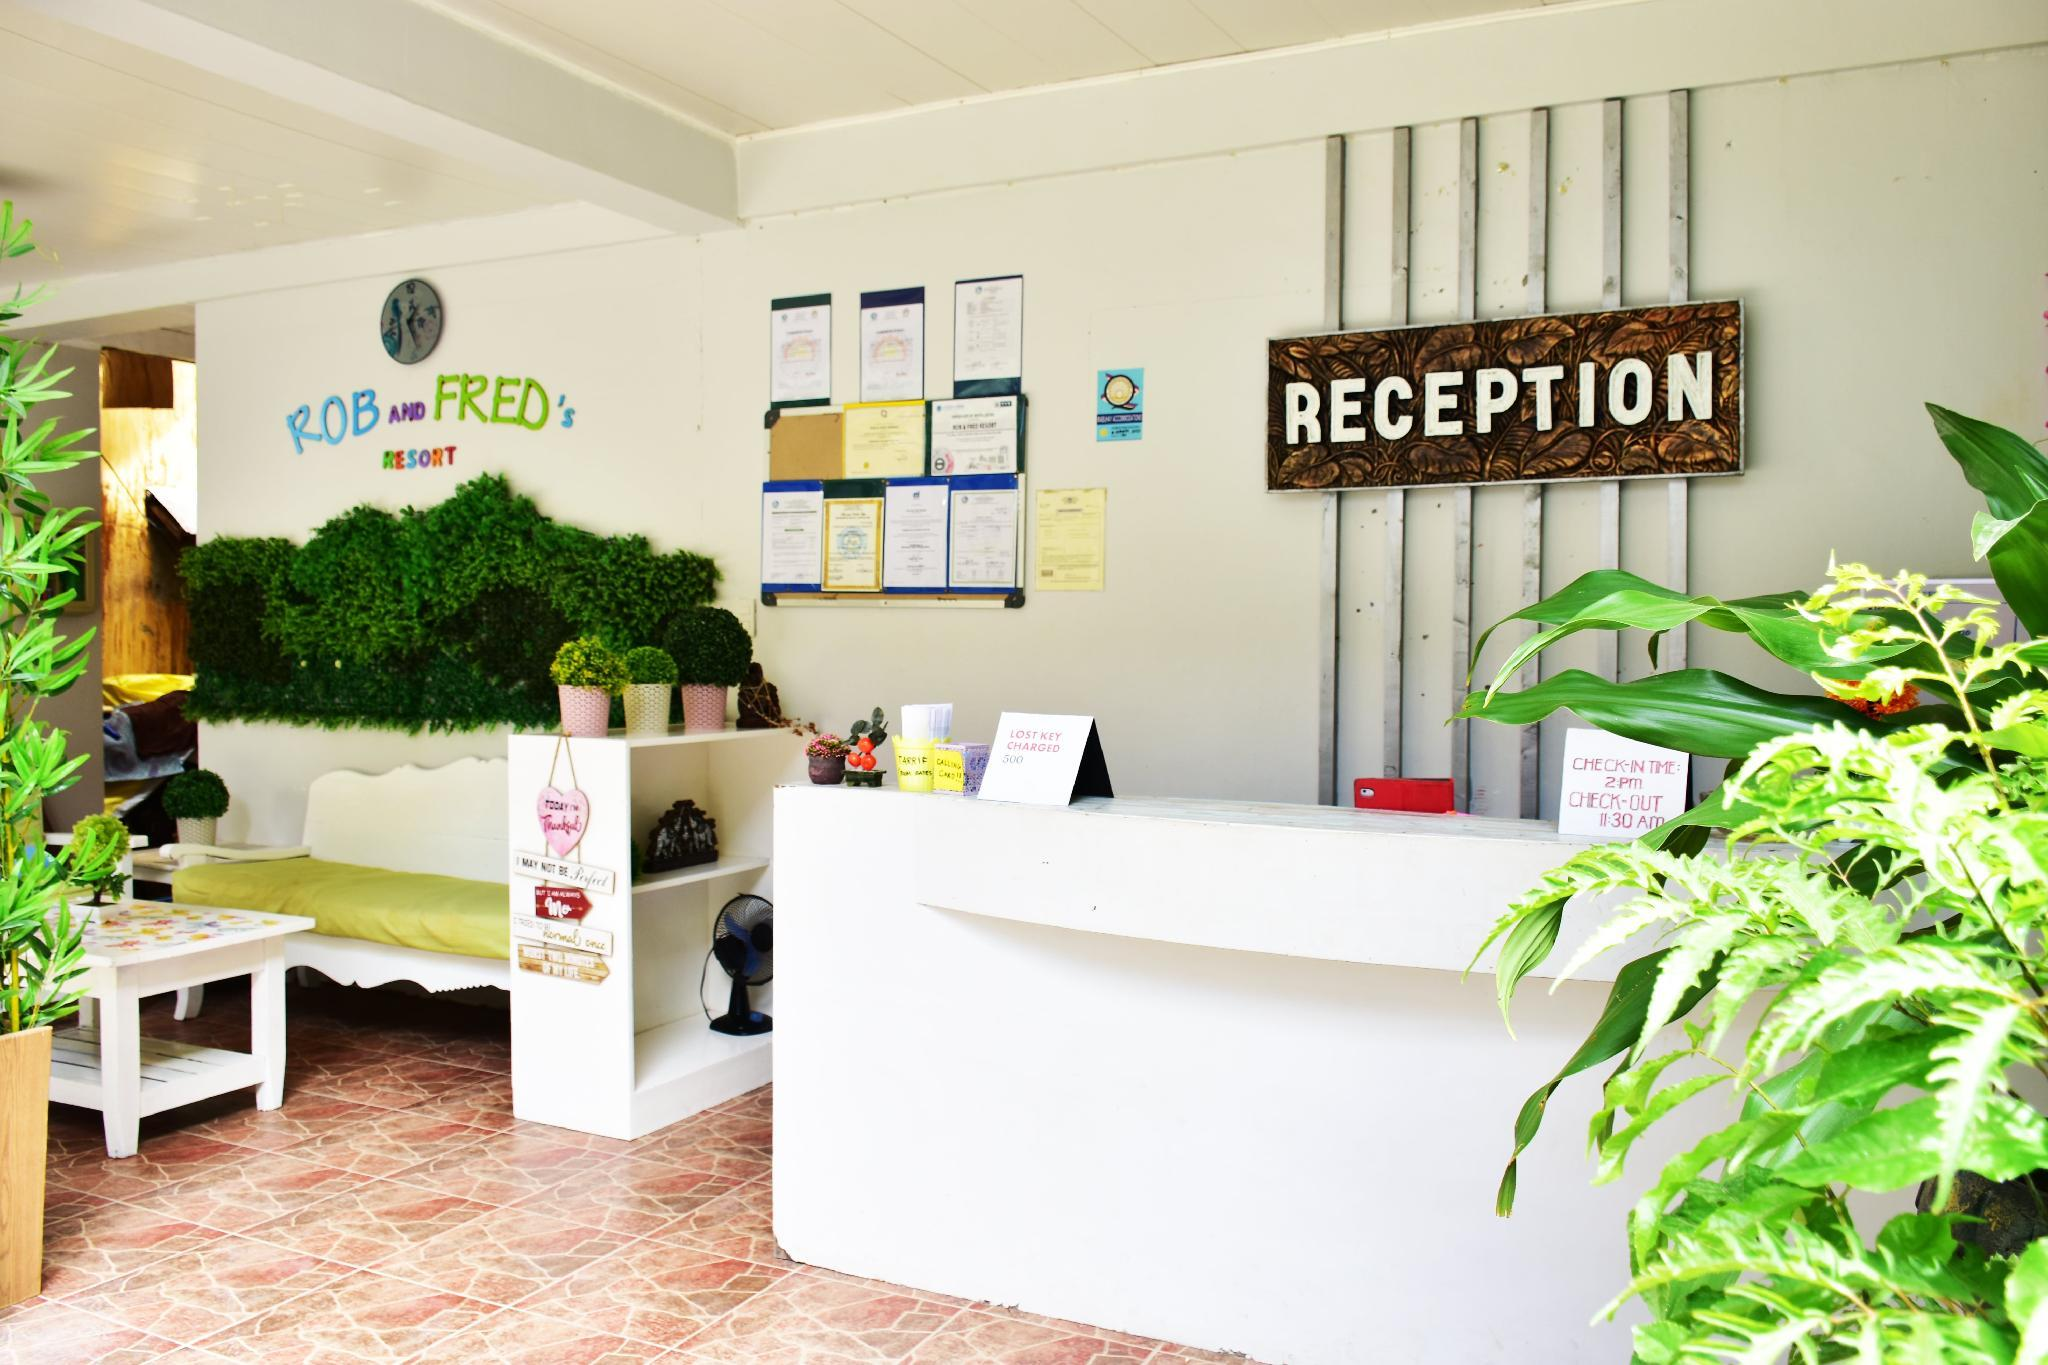 Cocotel Rooms Rob And Fred Resort